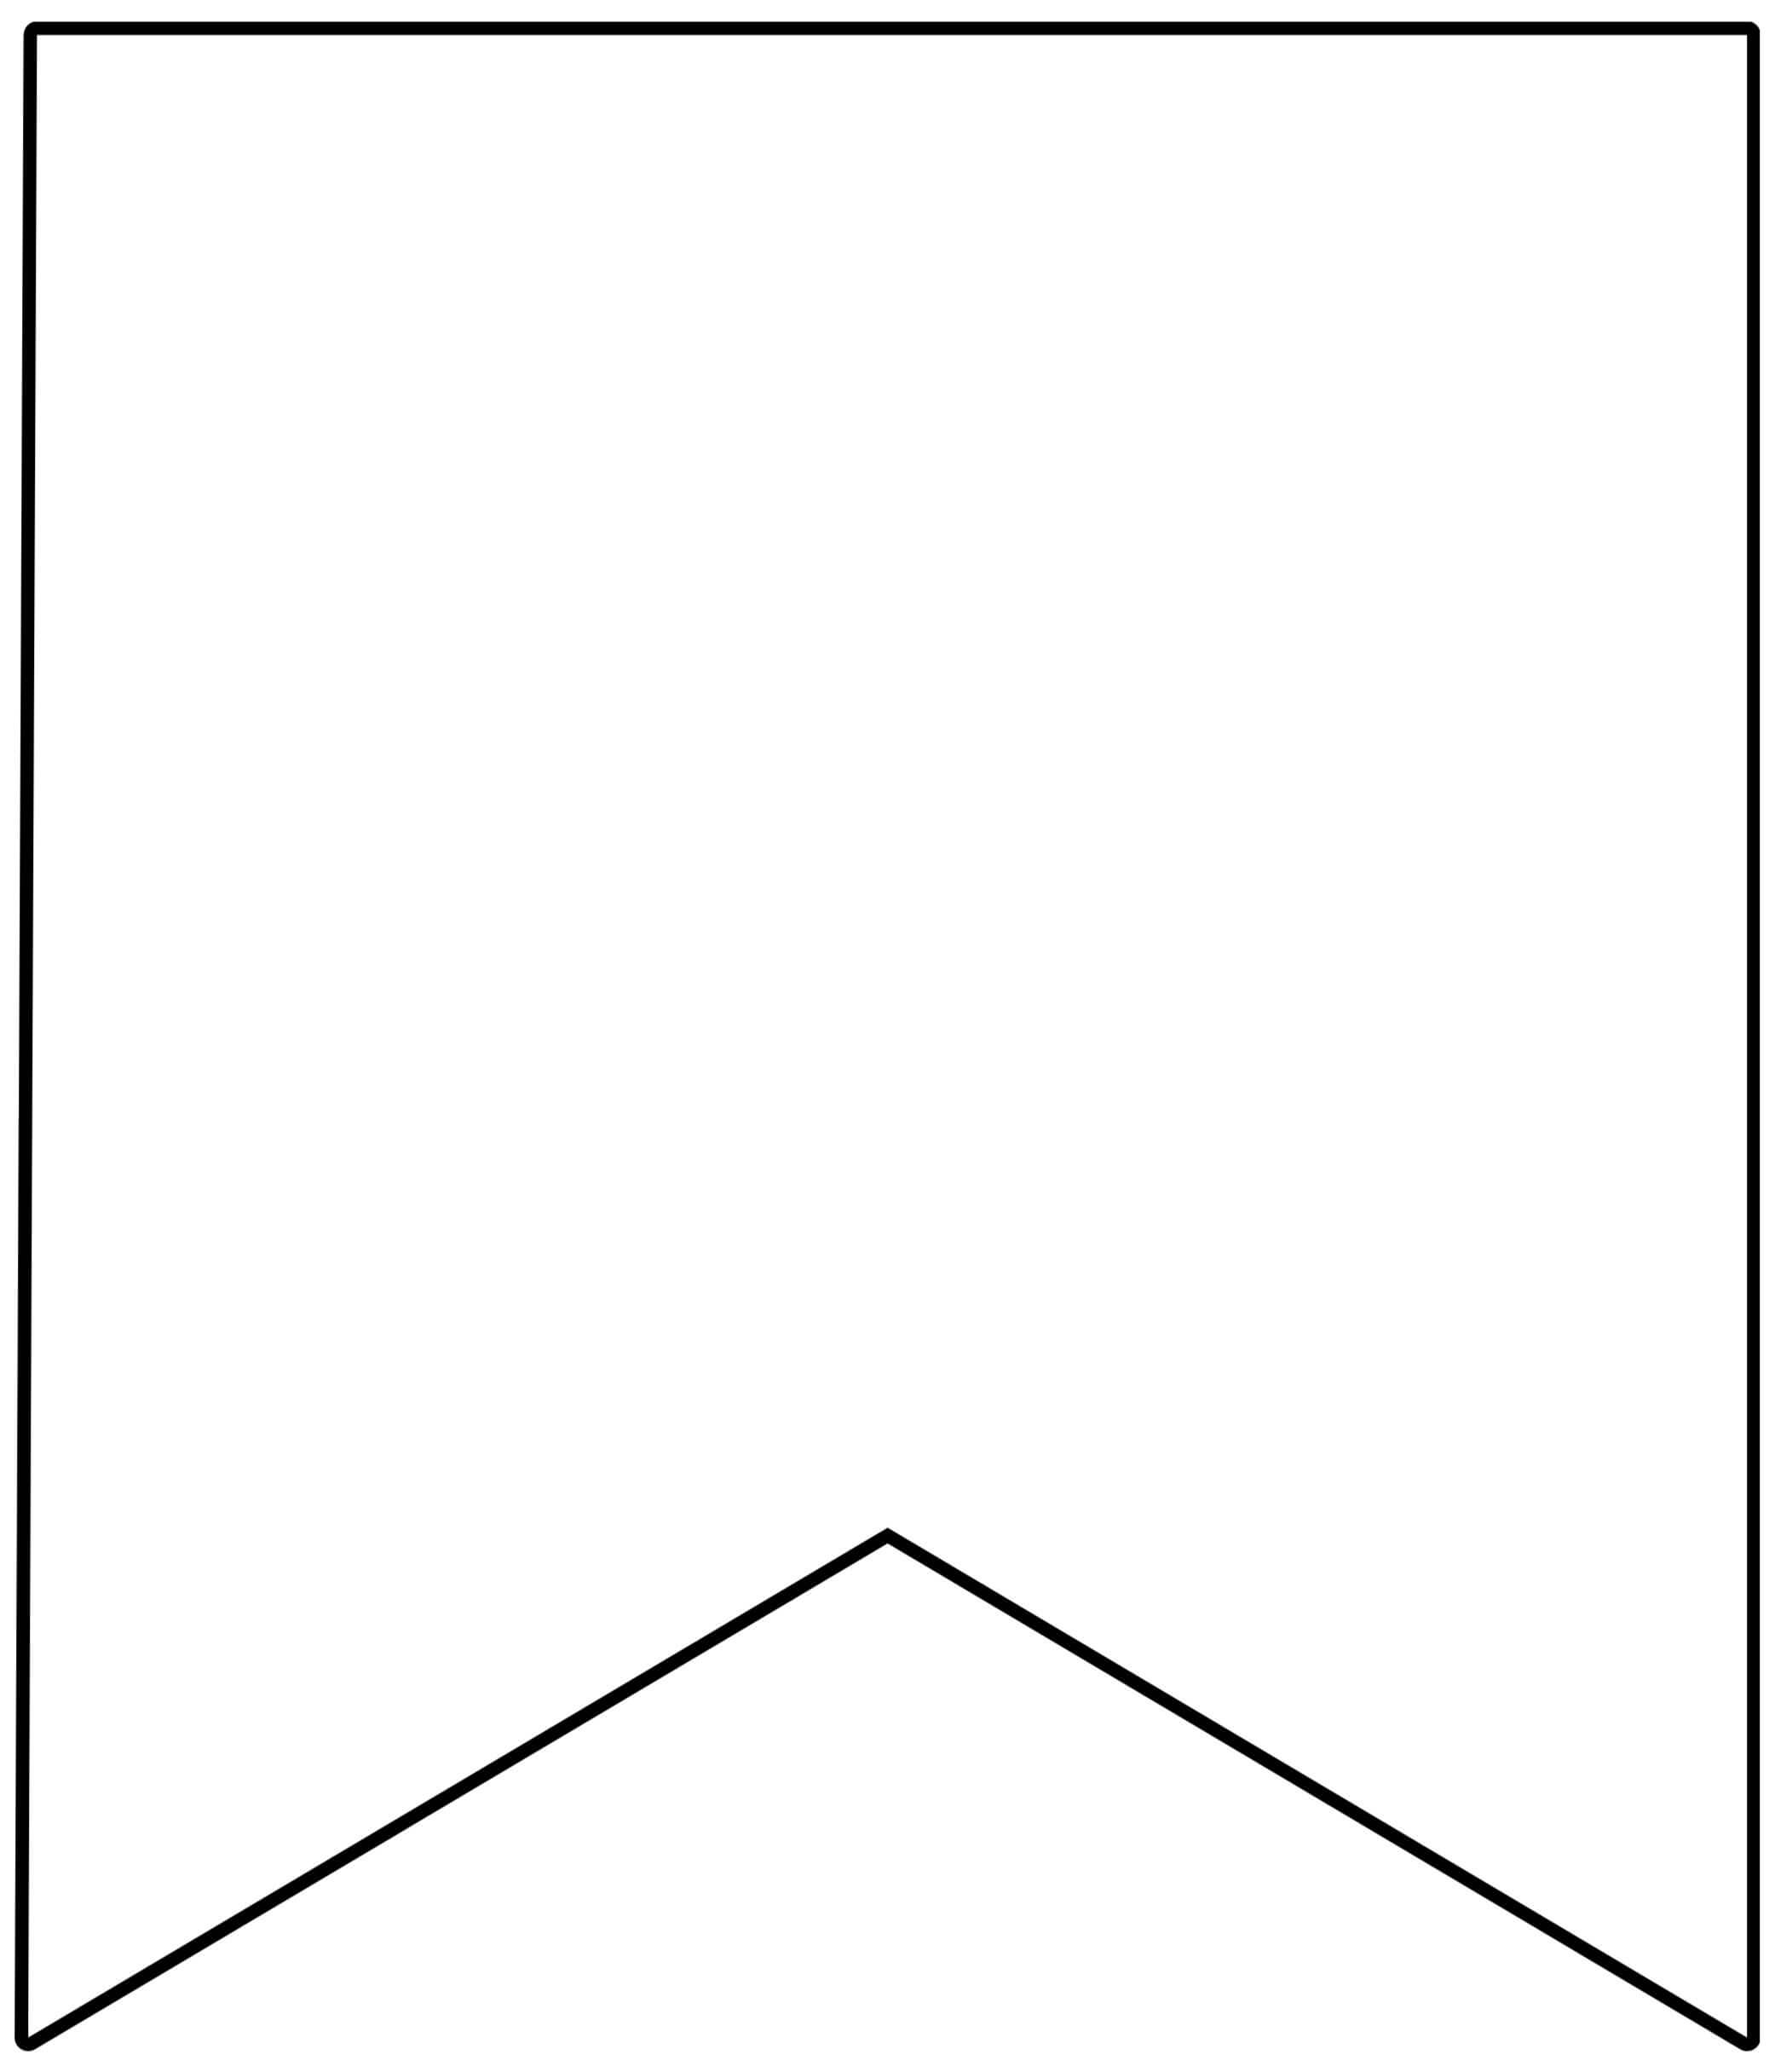 Template Printable Pennant Banner - Epp Acp   Free In Free Triangle Banner Template